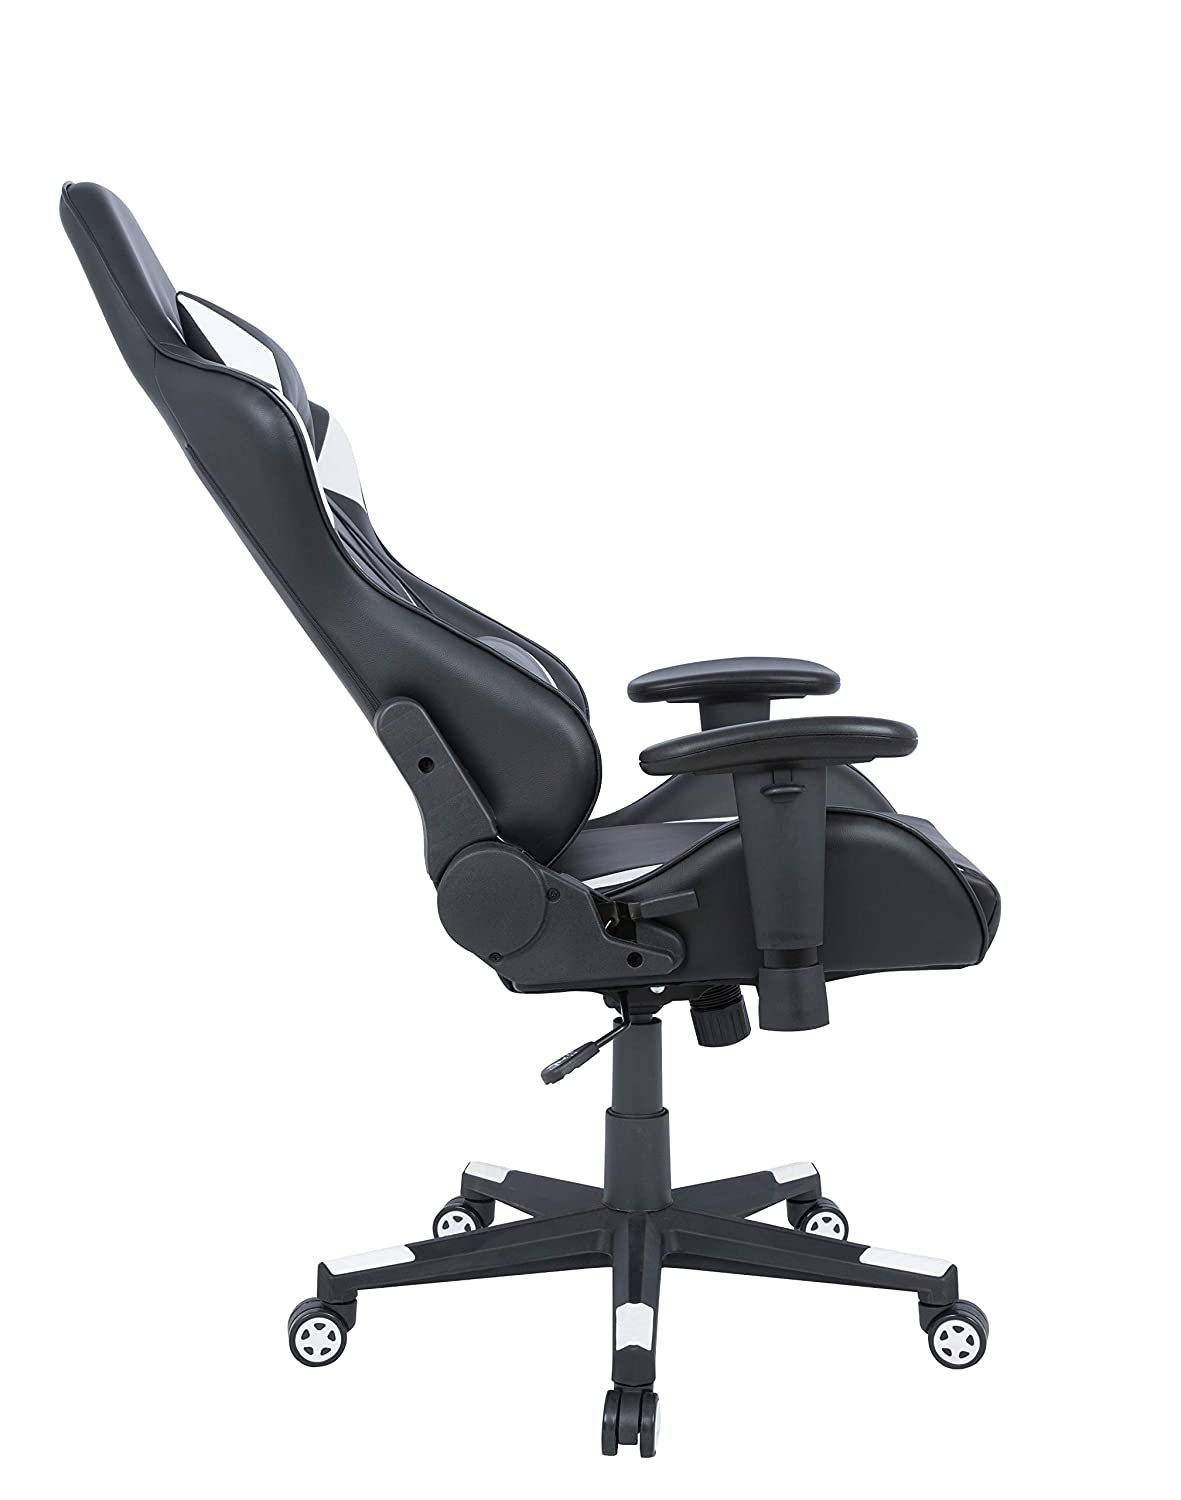 AmazonBasics Gaming Office Chair – Racing Style Seat with Headrest and Firm Lumbar Support – White